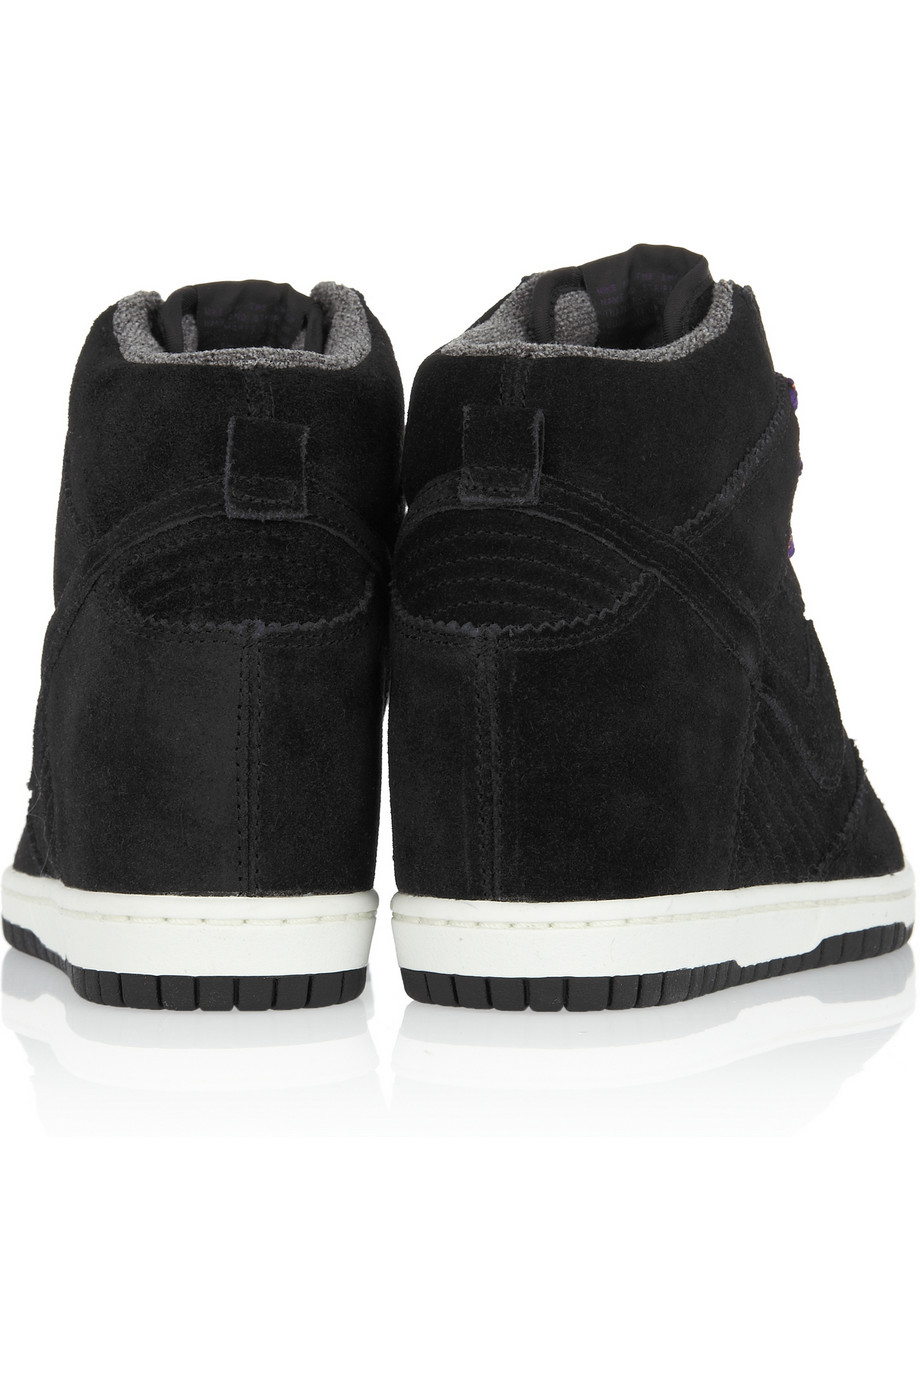 Nike Dunk Sky Hi Suede Wedge Sneakers in Black - Lyst